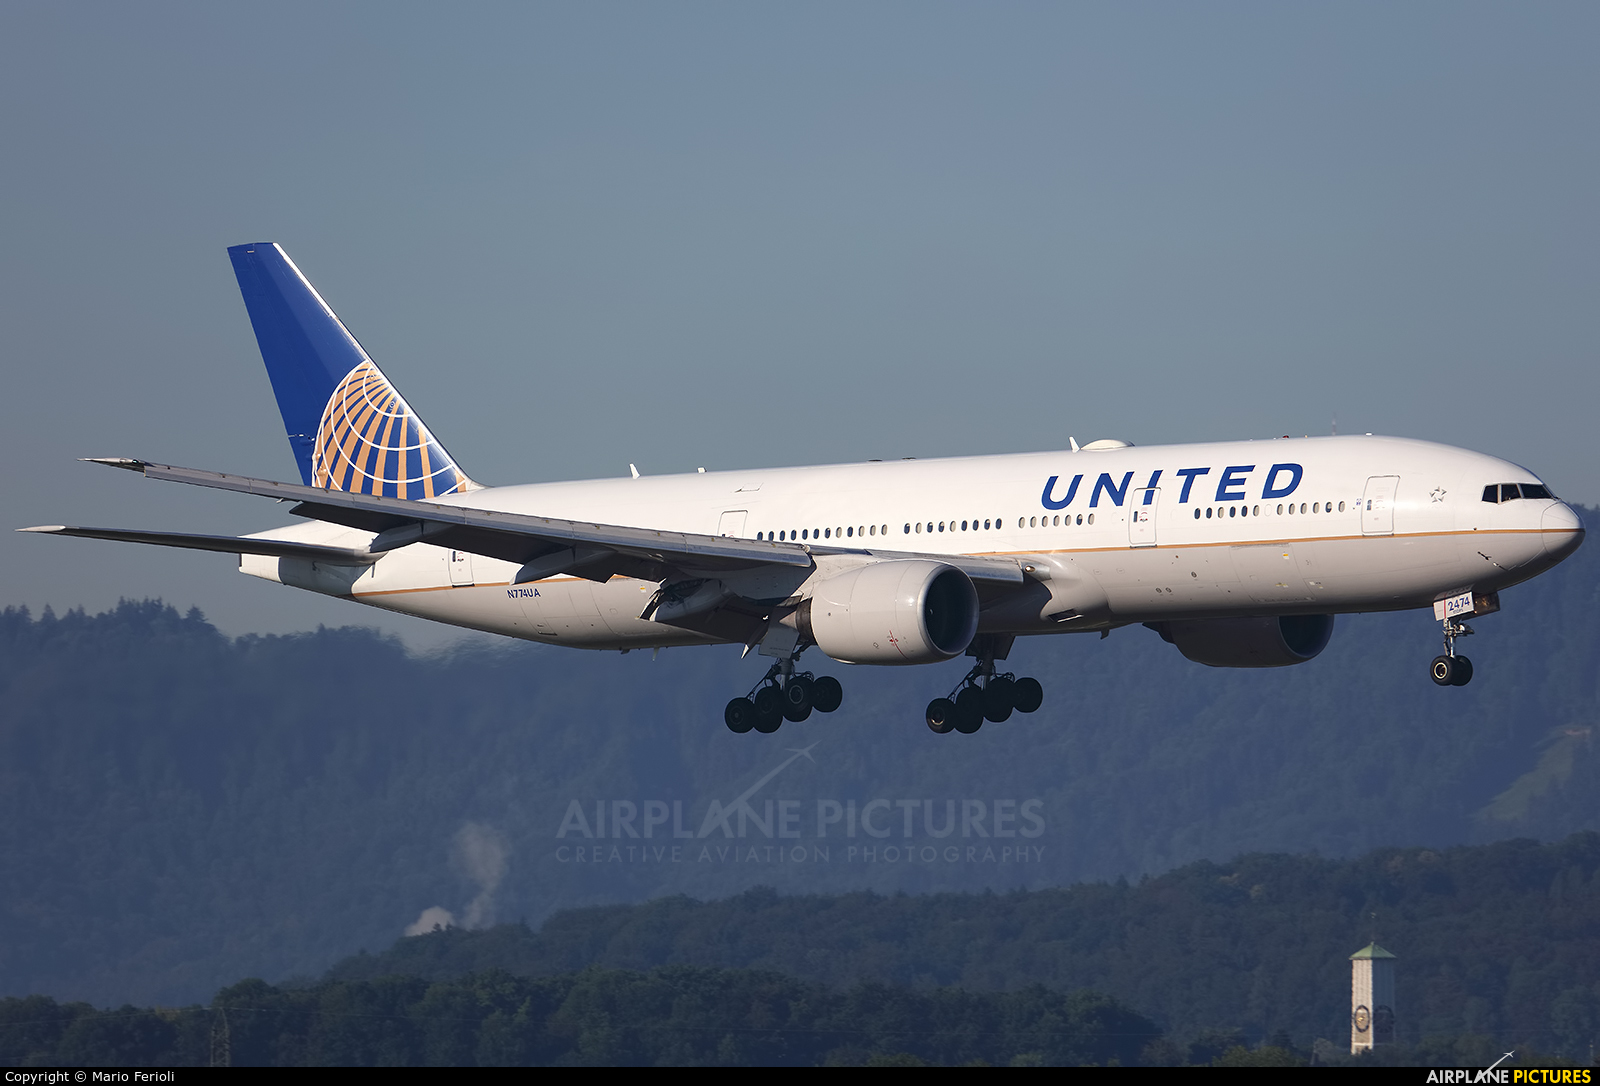 United Airlines N774UA aircraft at Zurich